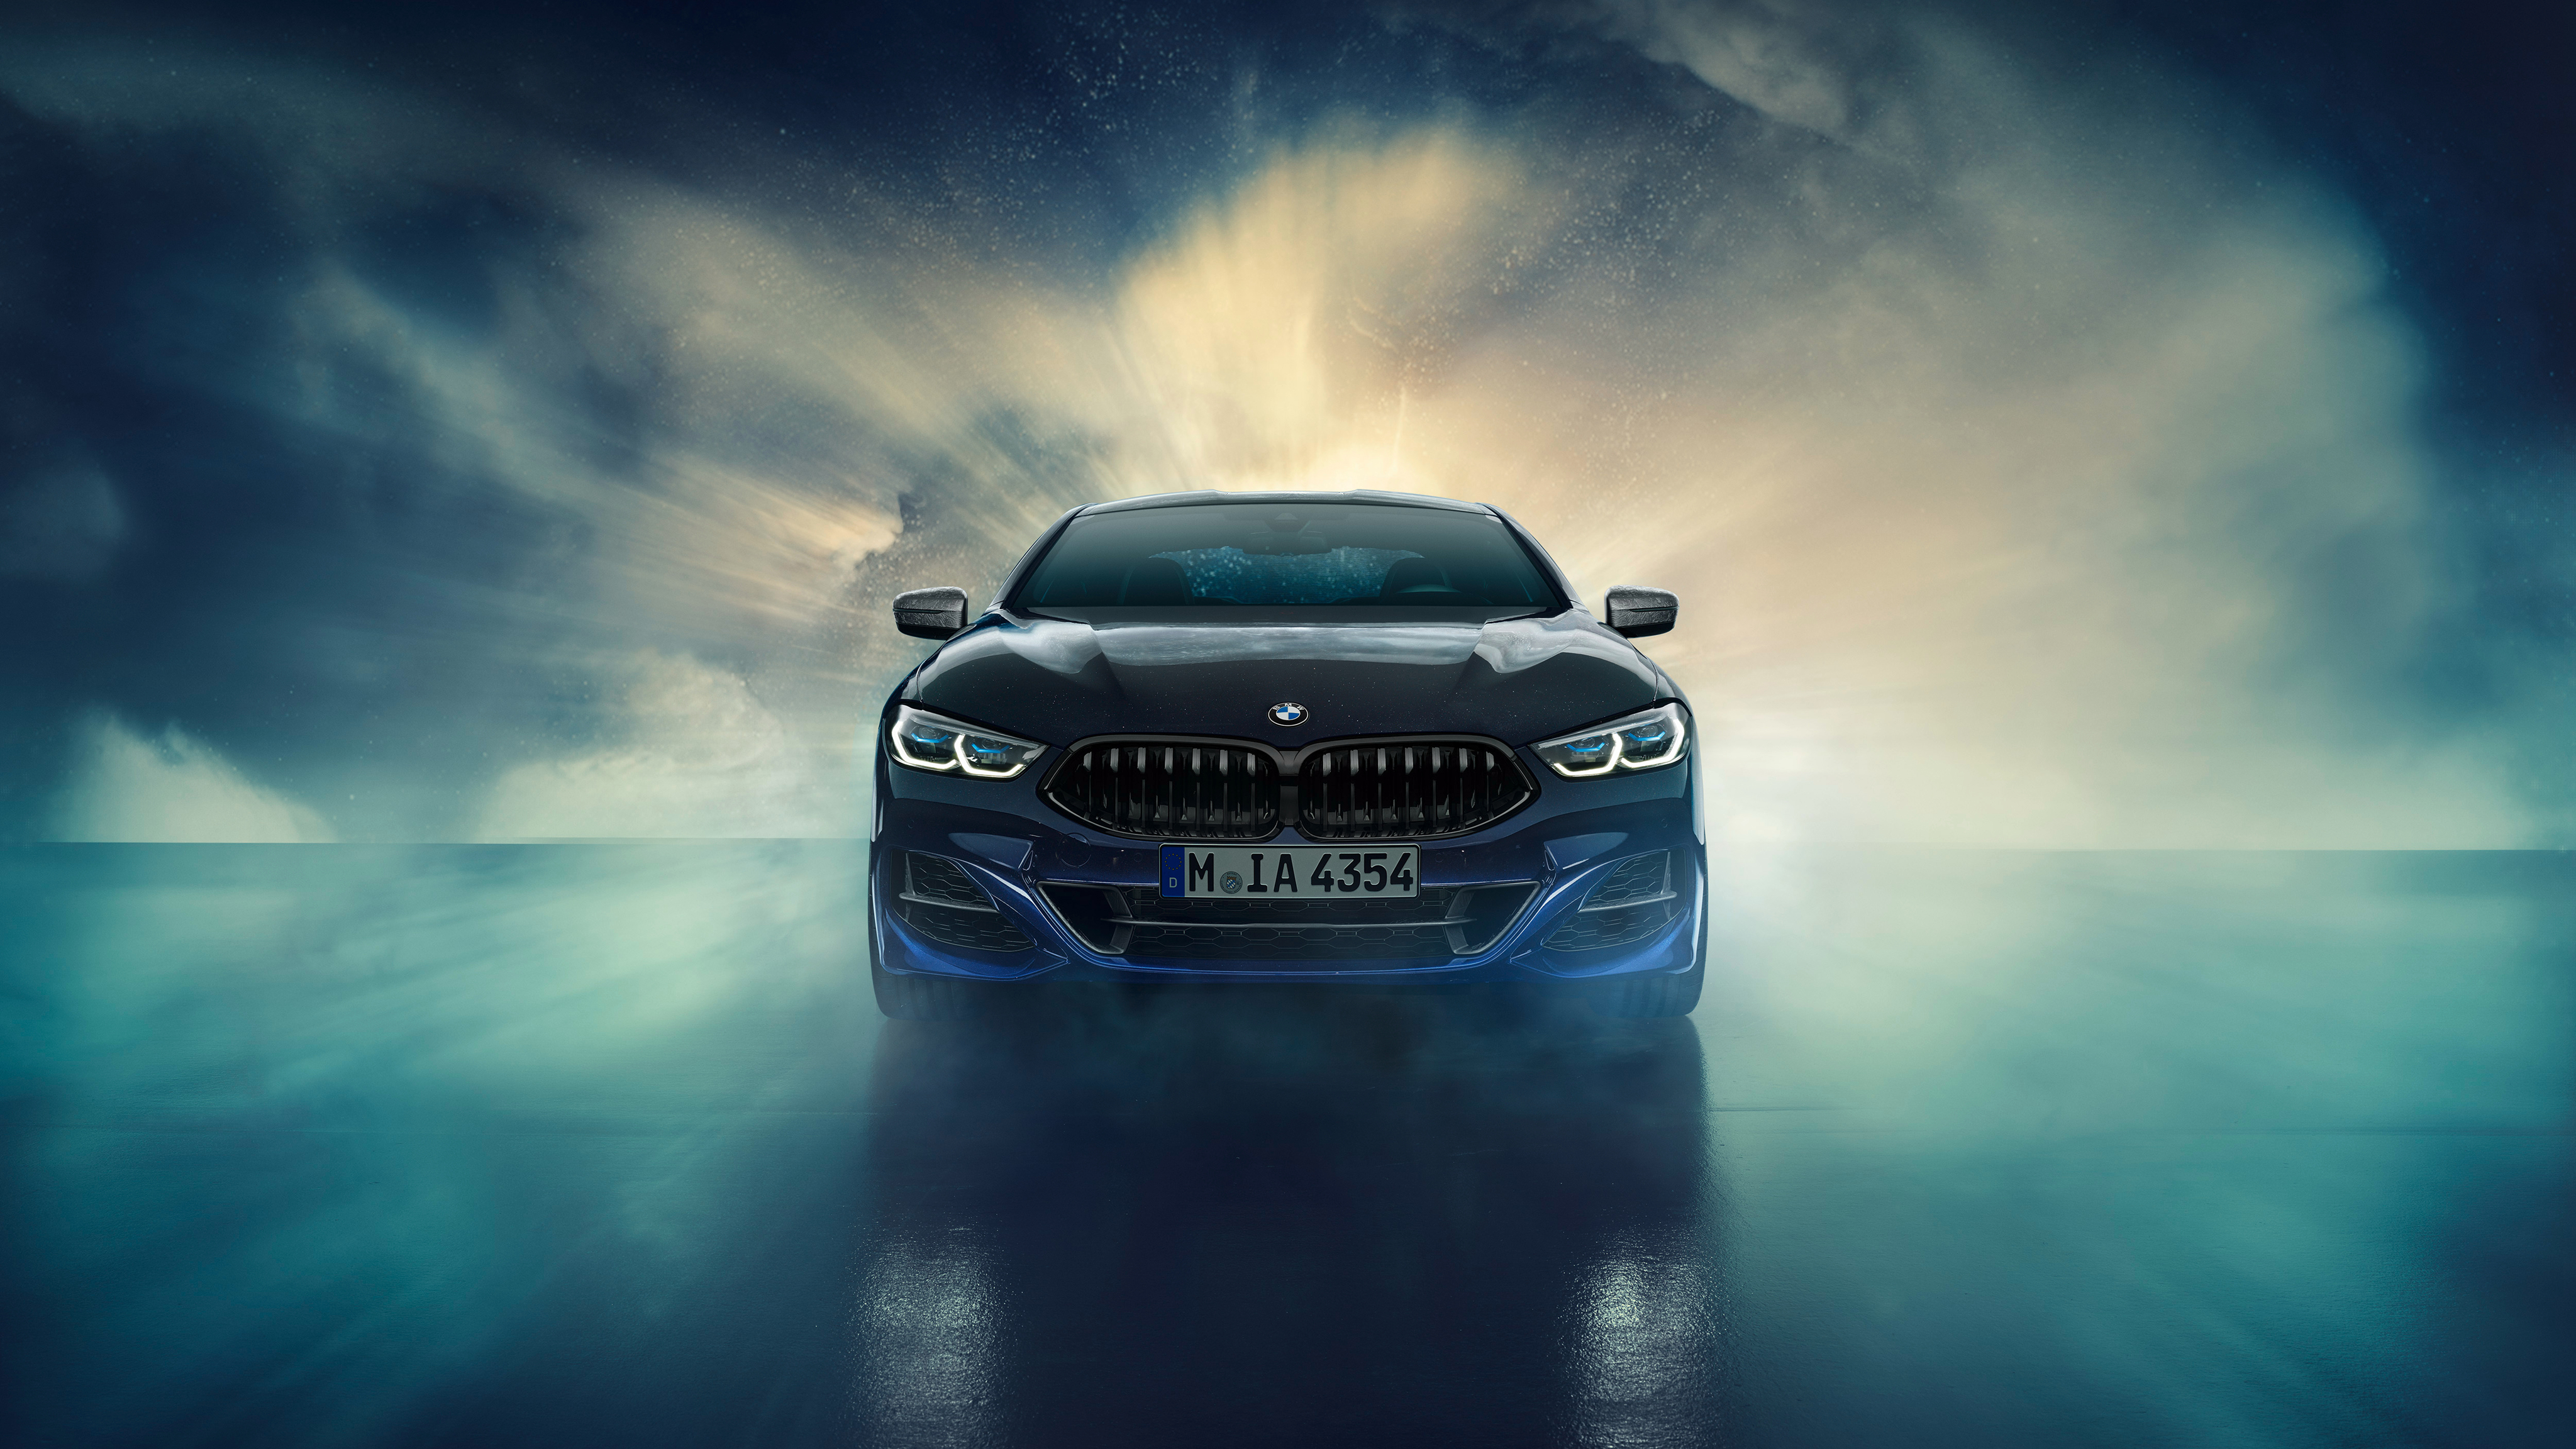 Bmw Individual M850i Xdrive Night Sky 2019 4k Wallpapers Wallpapers Hd